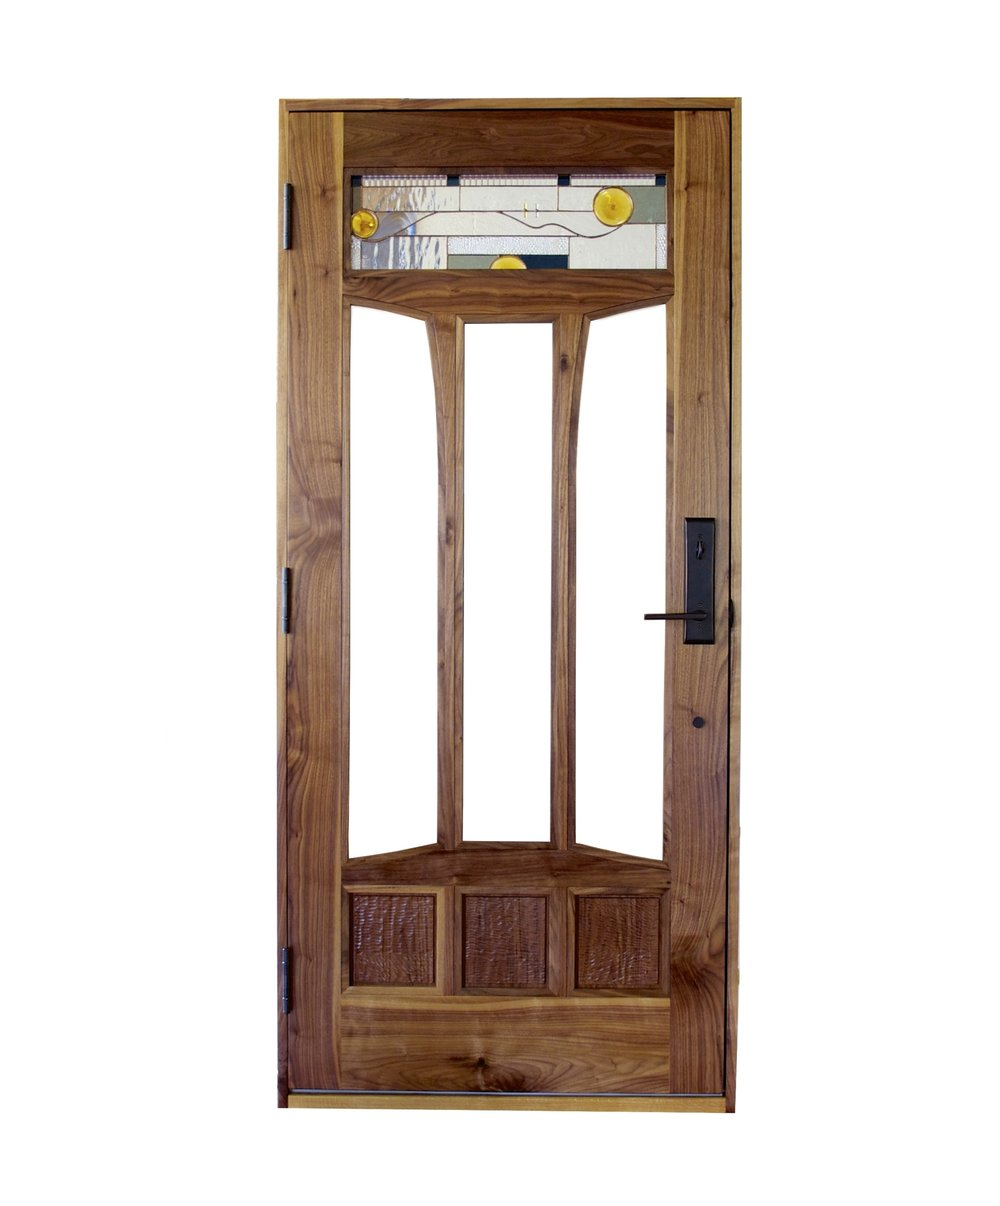 We provide a complete unit: a ready to install pre-hung door with jamb, ball bearing hinges, weather stripping, and drilling for hardware. Finishing available. Add sidelights or transom creating a grand front entrance.